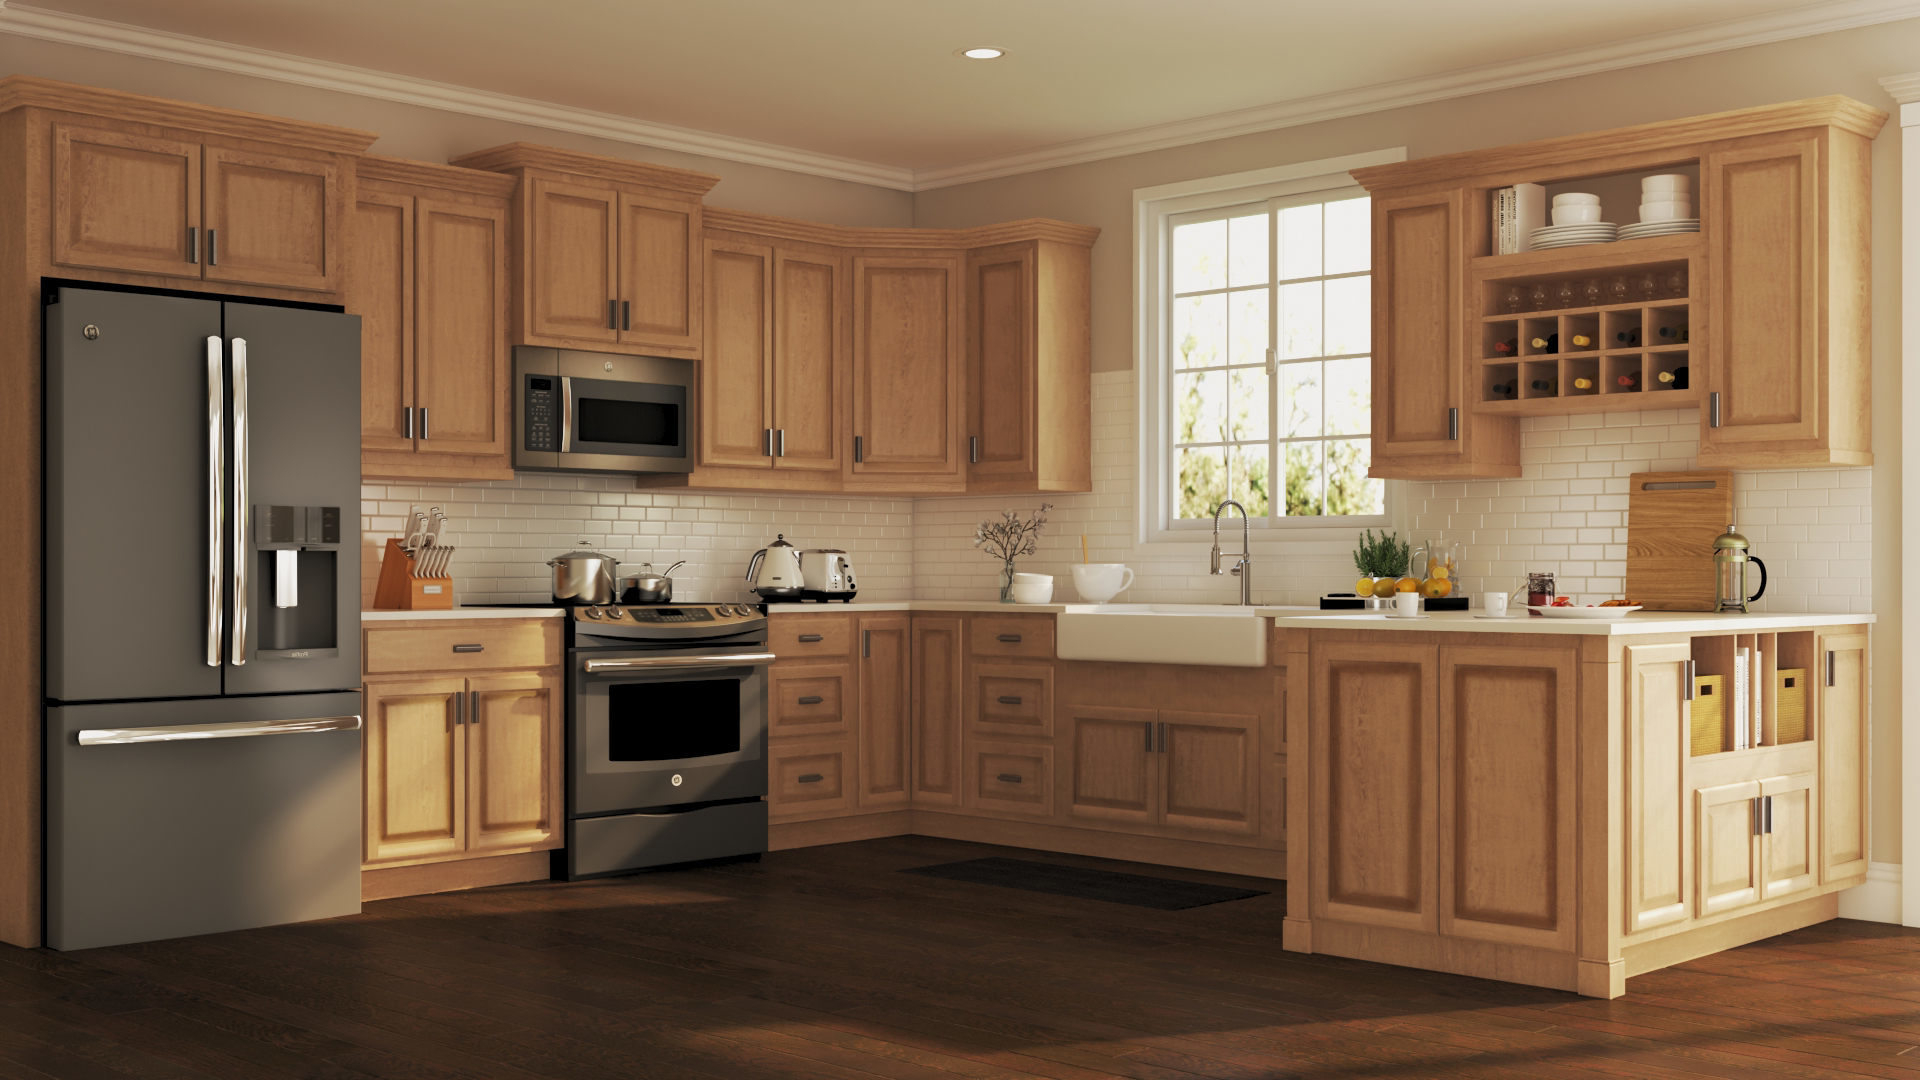 Kitchen Cabinets Ftd8 Hampton Wall Kitchen Cabinets In Medium Oak Kitchen the Home Depot